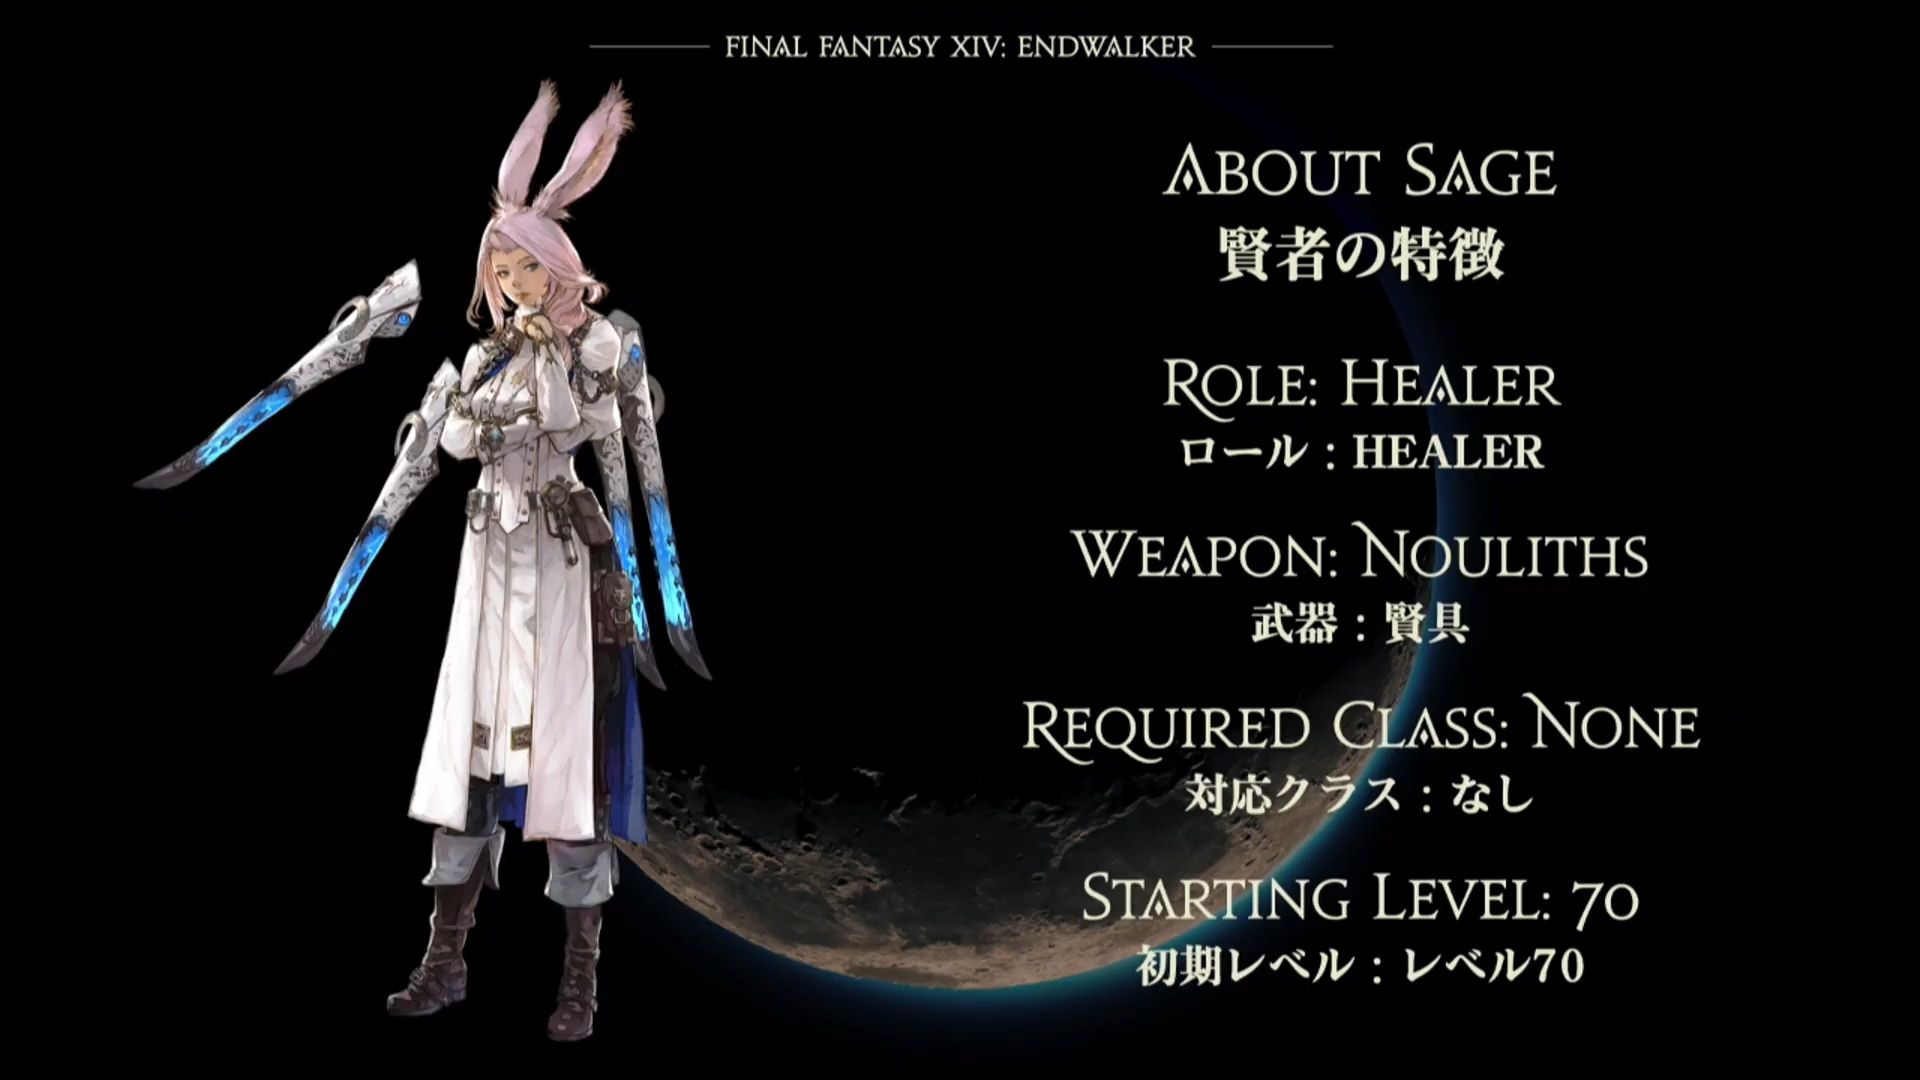 the-next-final-fantasy-xiv-expansion-is-called-endwalker,-coming-fall-2021